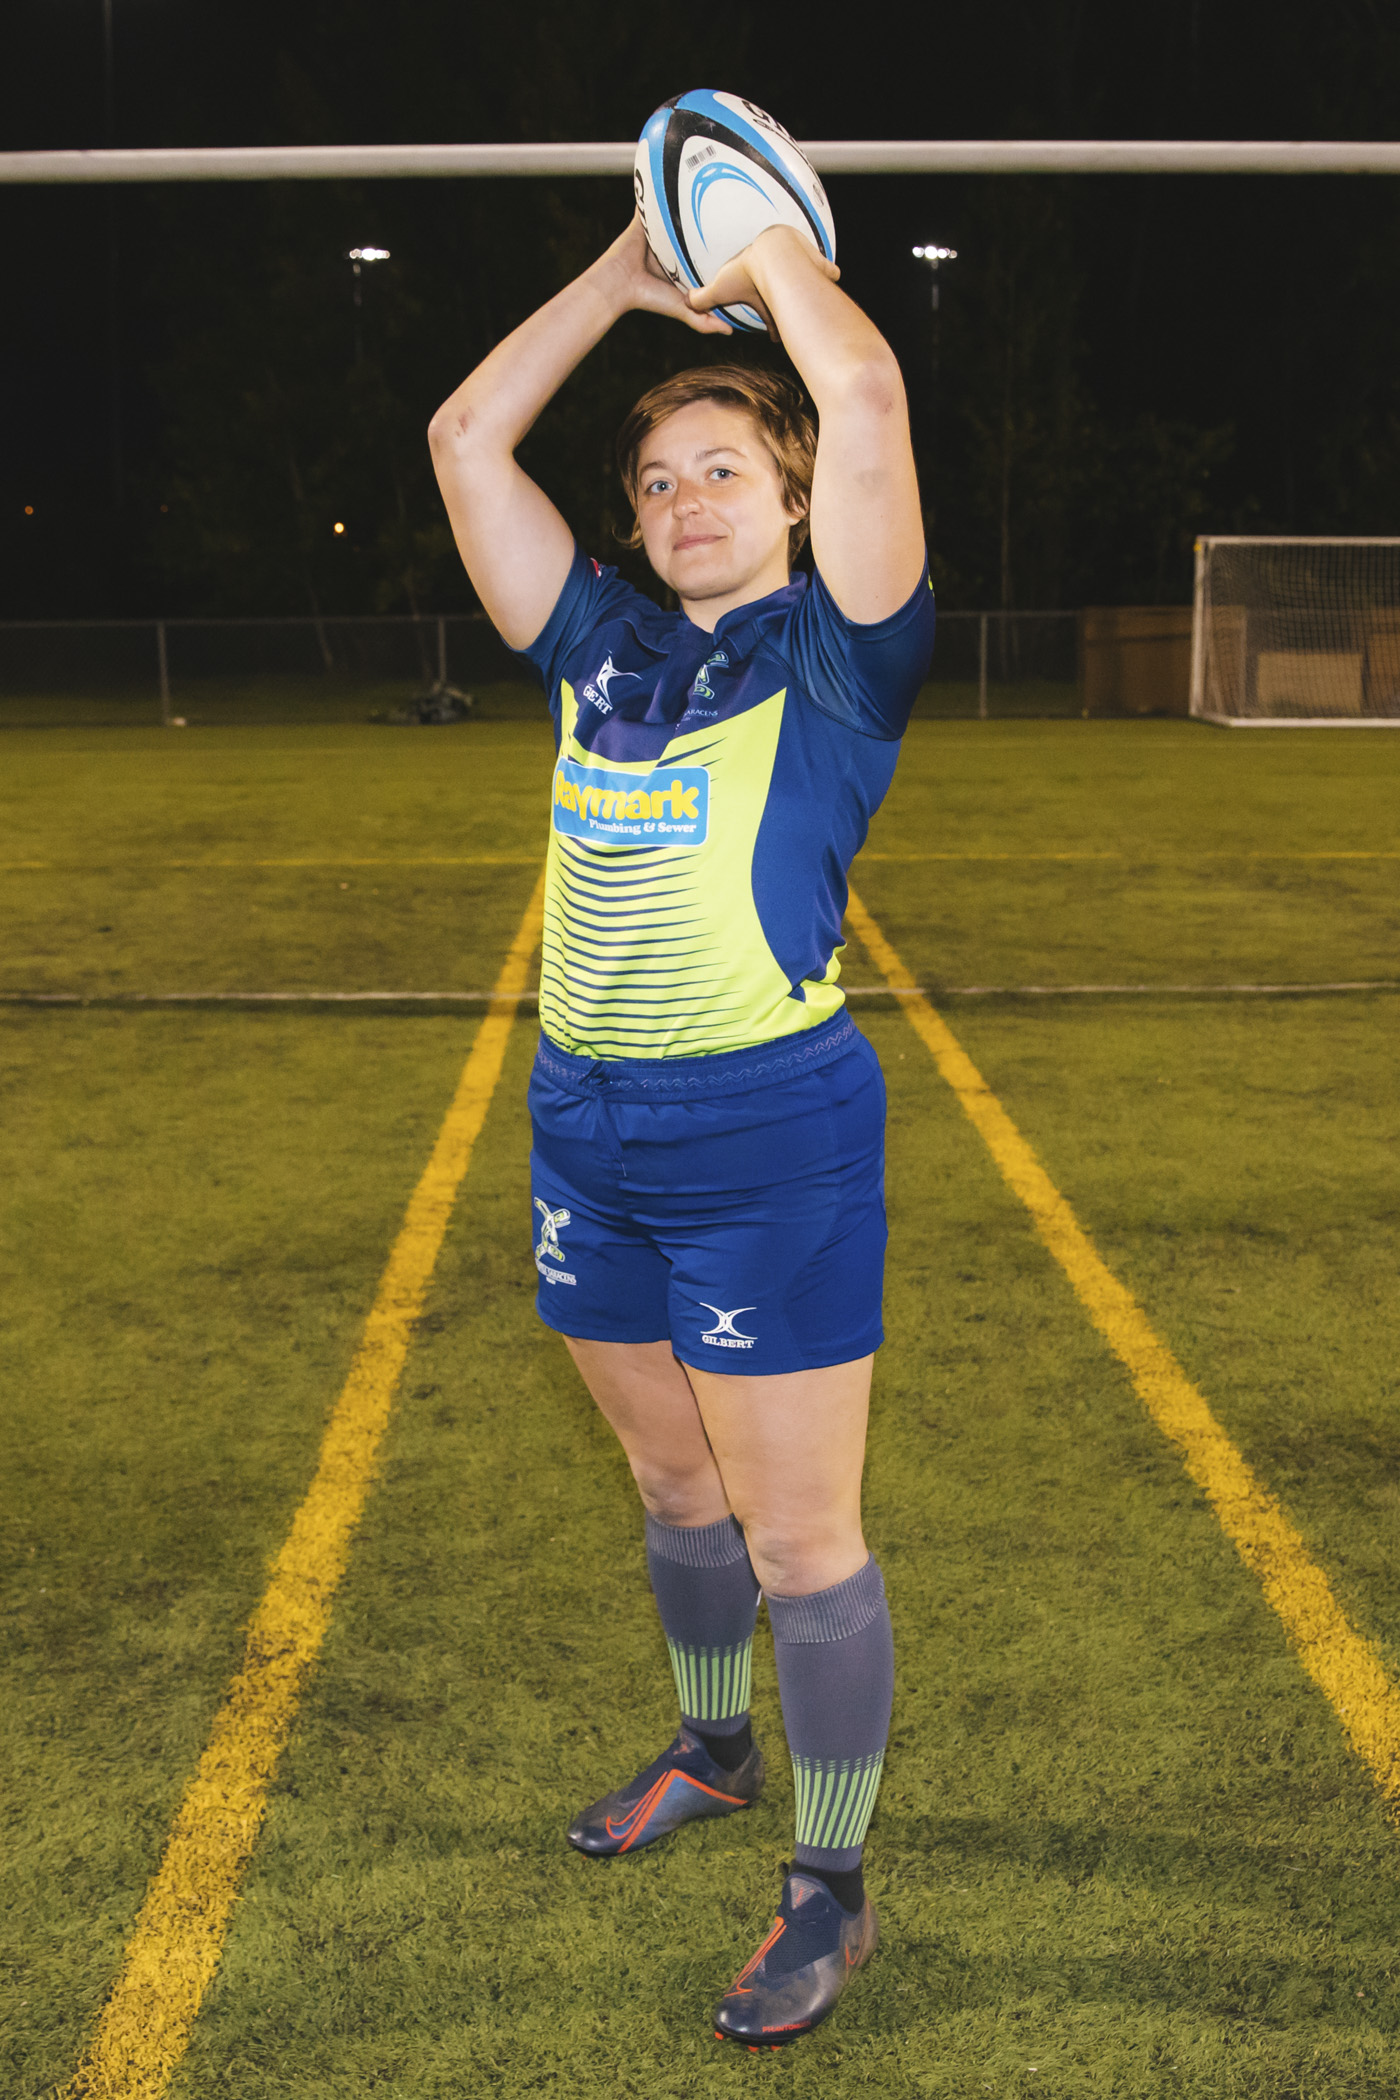 Everyone say, HELLO BECK! This is Beck she is a Hooker/Flanker mix. She loves anything with pesto with a back up of Reece's eggs (Image: Sunita Martini / Seattle Refined).